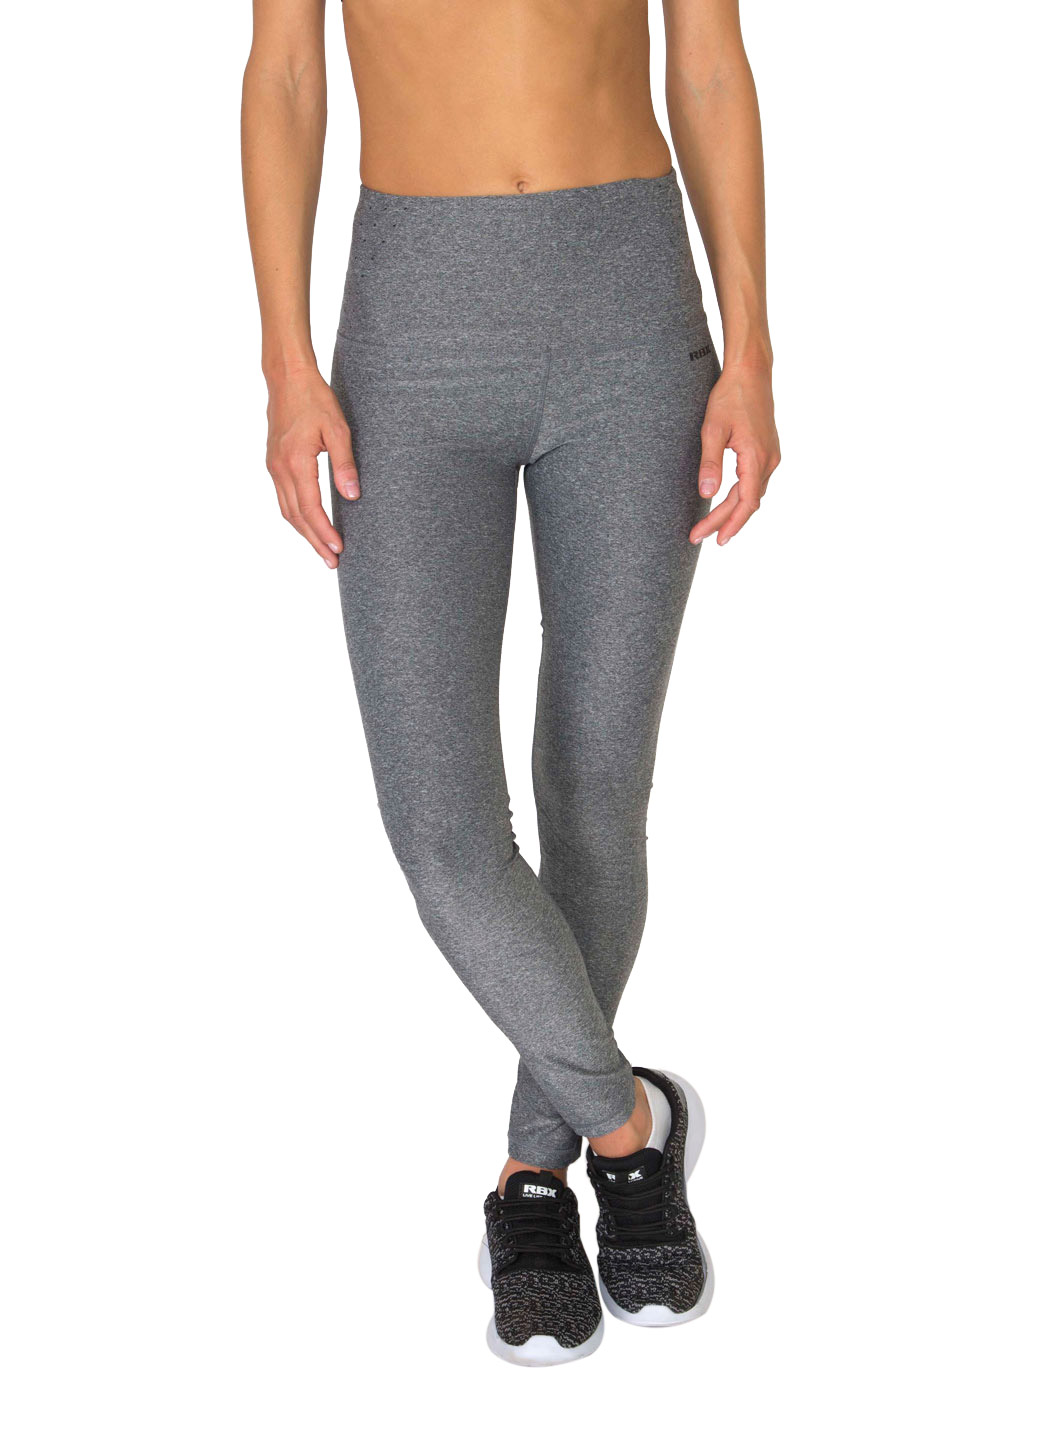 Prime Body Contouring High Waisted Compression Performance Leggings